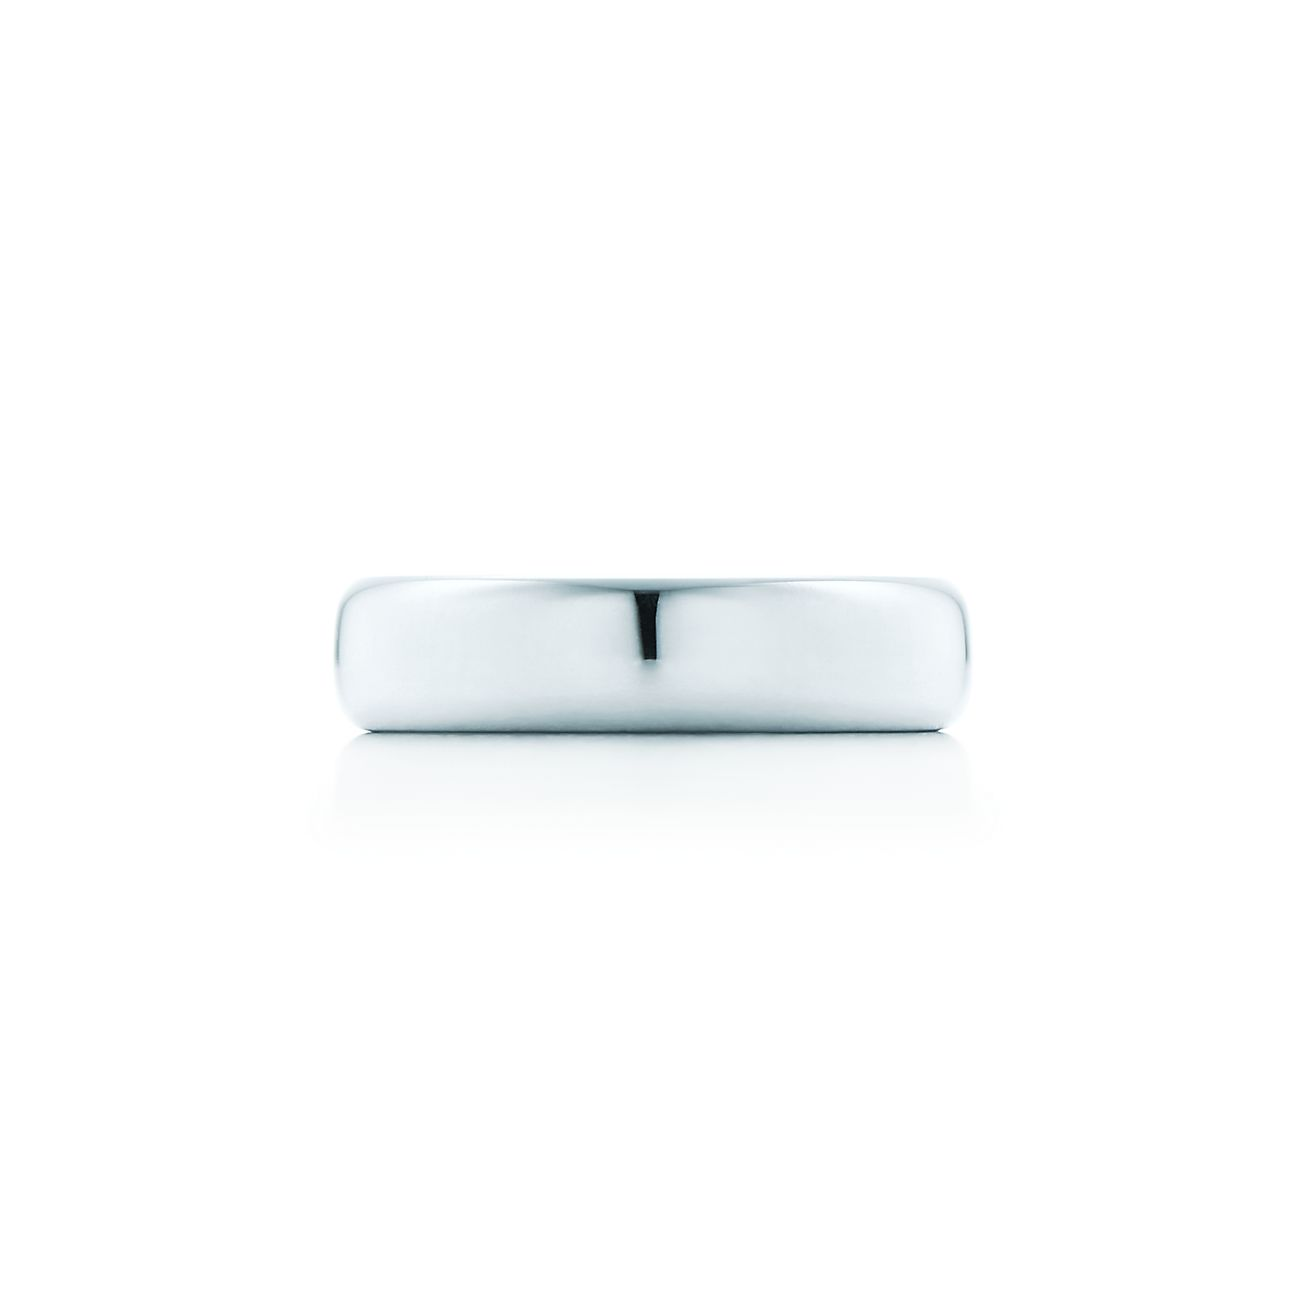 Tiffany Classic wedding band ring in 18k rose gold, 4.5 mm wide - Size 12 1/2 Tiffany & Co.